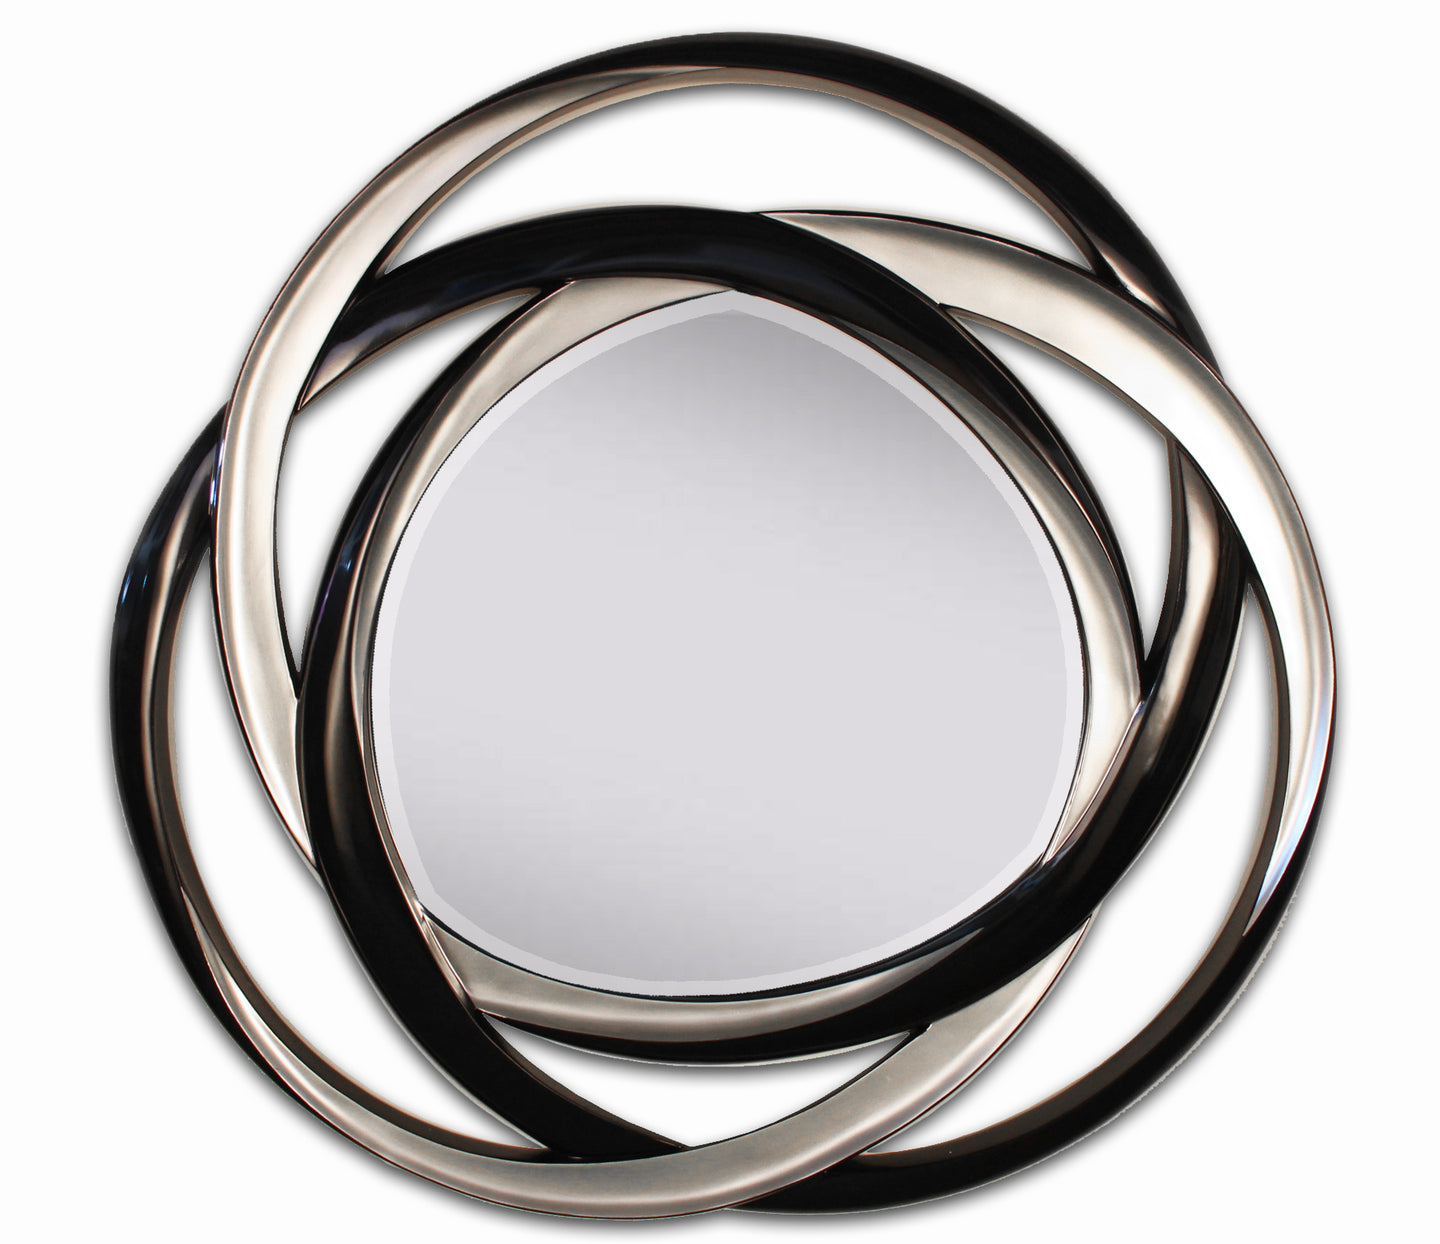 Borromean Rings Mirror